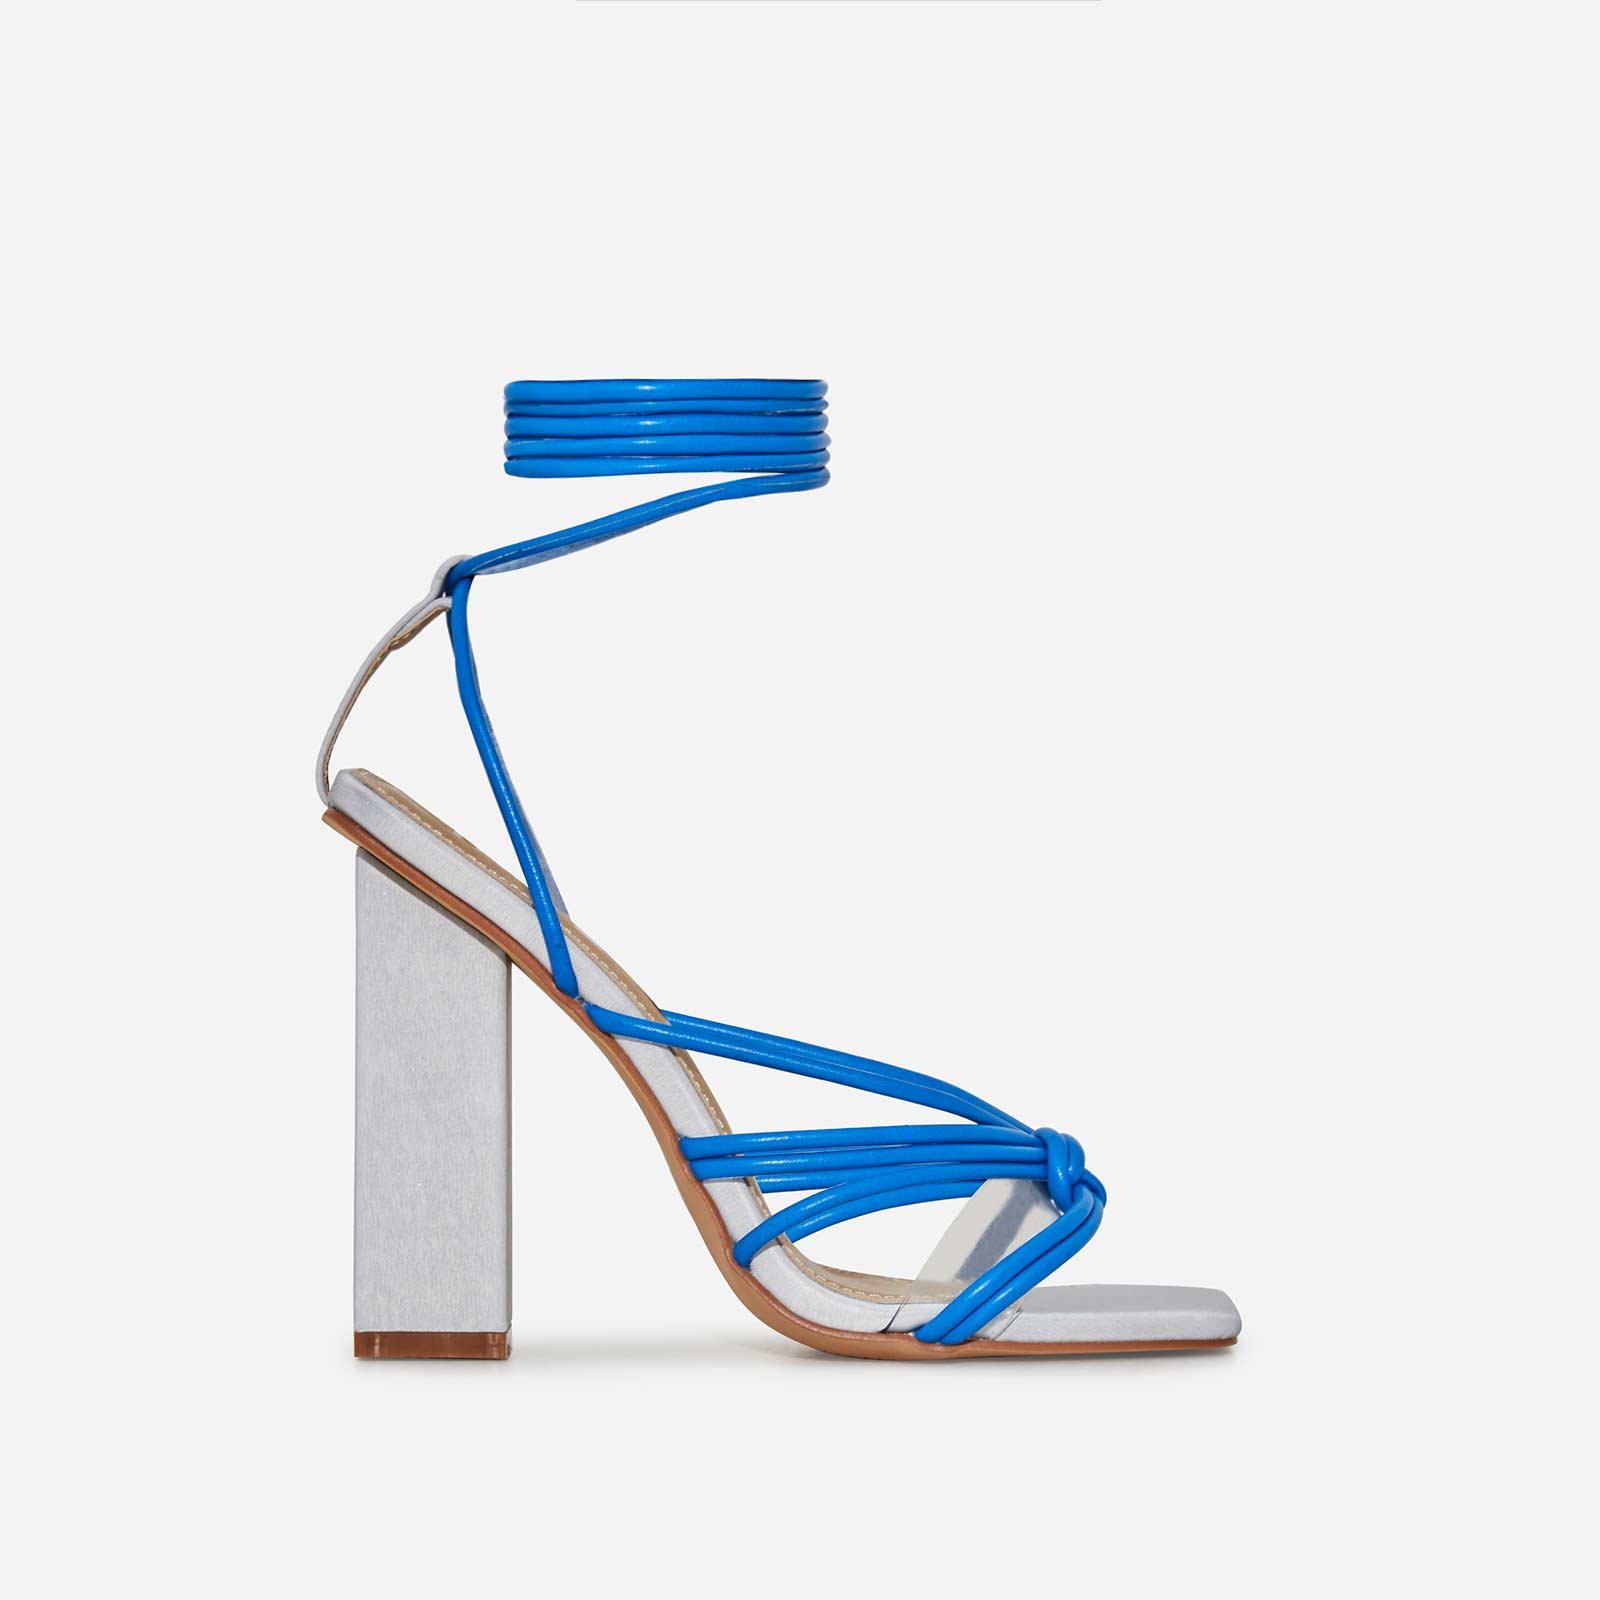 Neima Lace Up Square Toe Perspex Block Heel In Reflective Silver And Blue Faux Leather